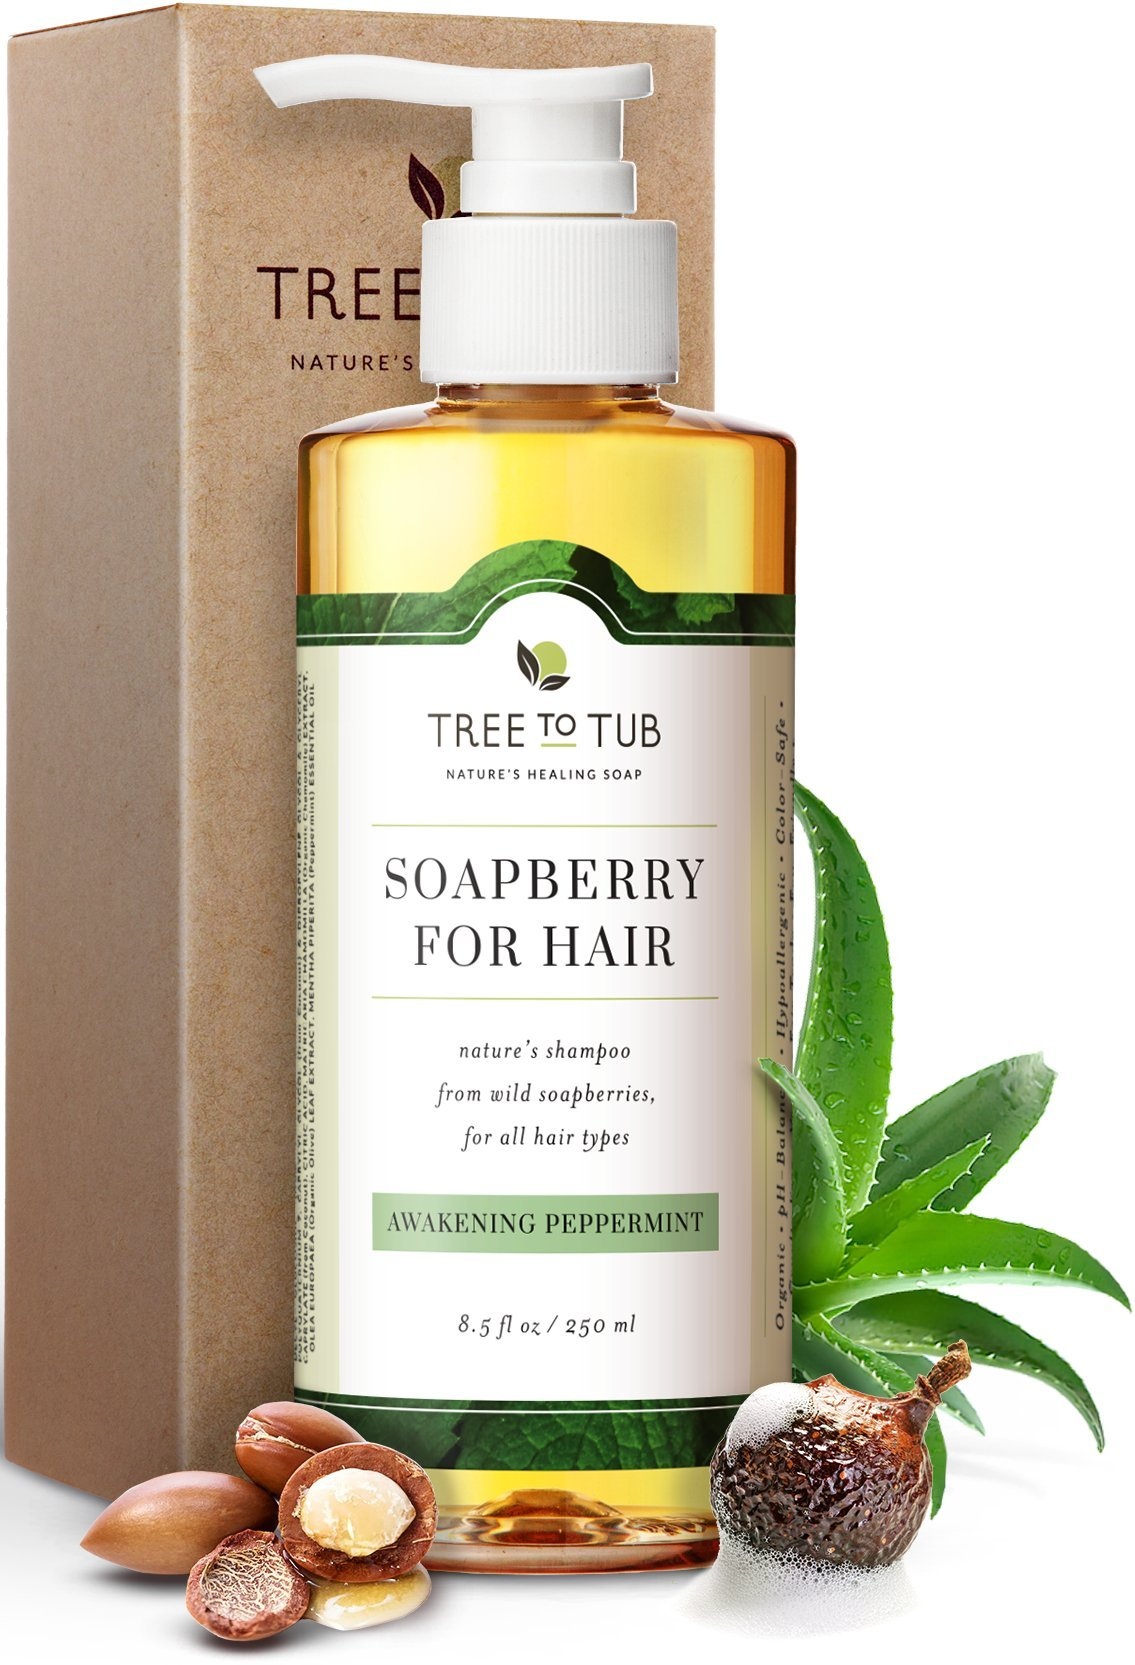 Real, Mint Shampoo For Oily Hair. The Only pH 5.5 Balanced Itchy Scalp Shampoo for Men and Women with Sensitive Skin – Peppermint Argan Shampoo with Organic Wild Soapberries, 8.5 oz—by Tree To Tub